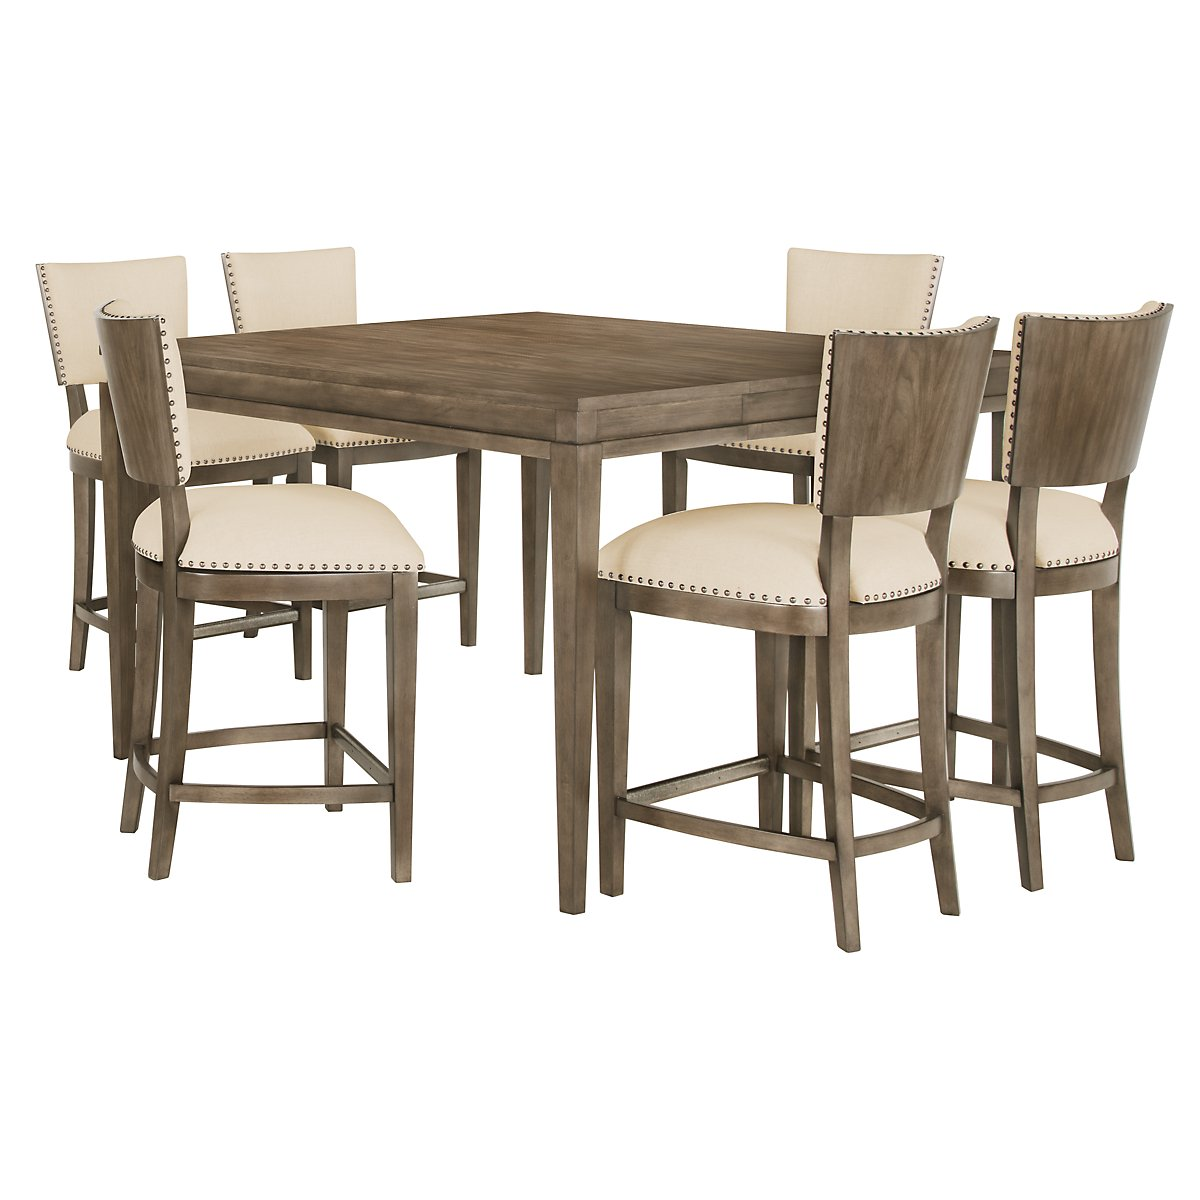 Preston Gray High Table & 4 Upholstered Barstools